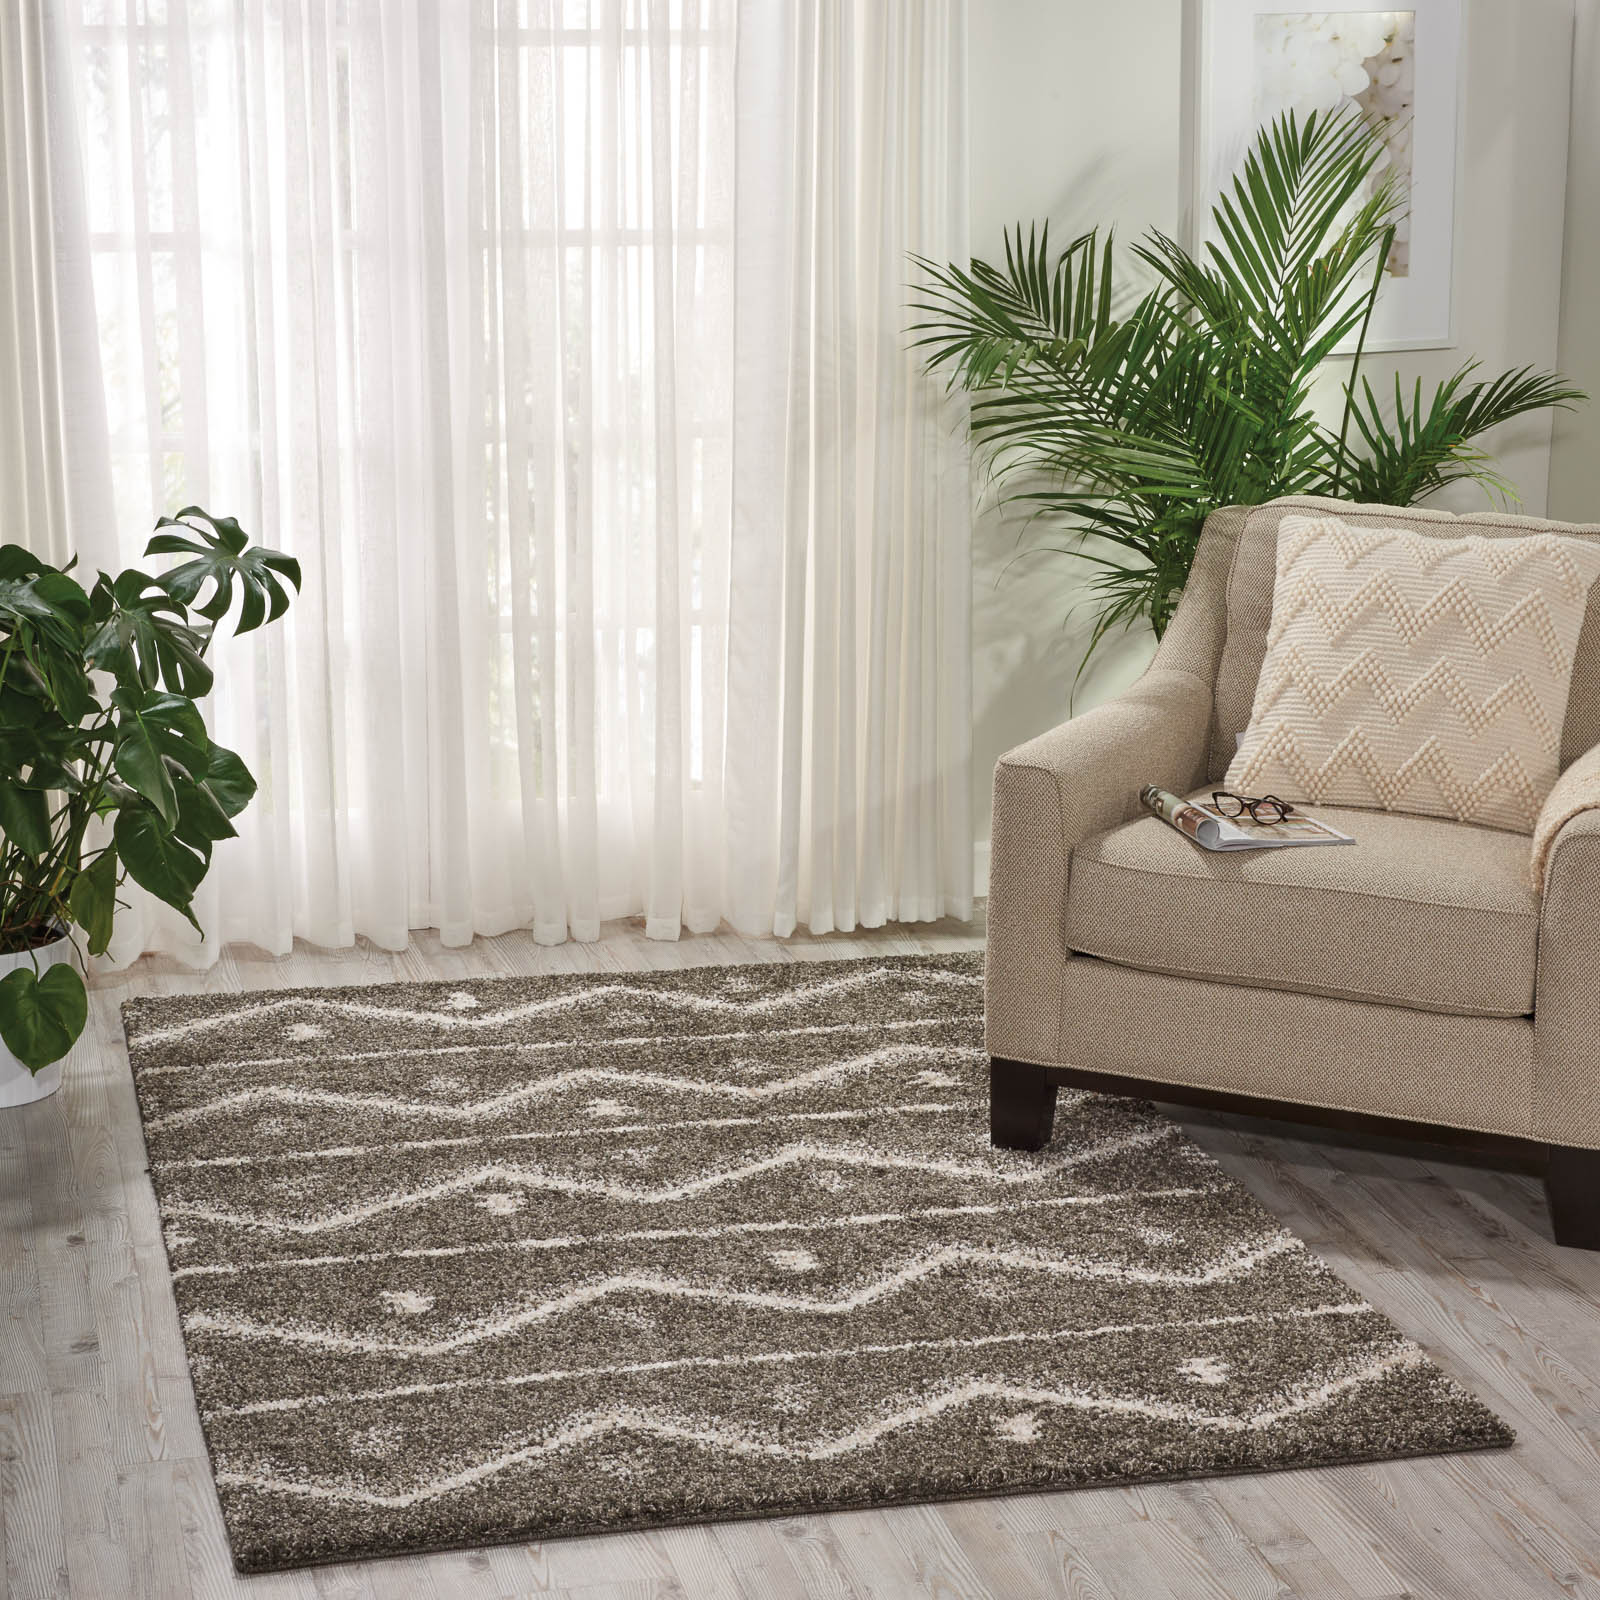 Tangier Rugs TAN04 in Grey